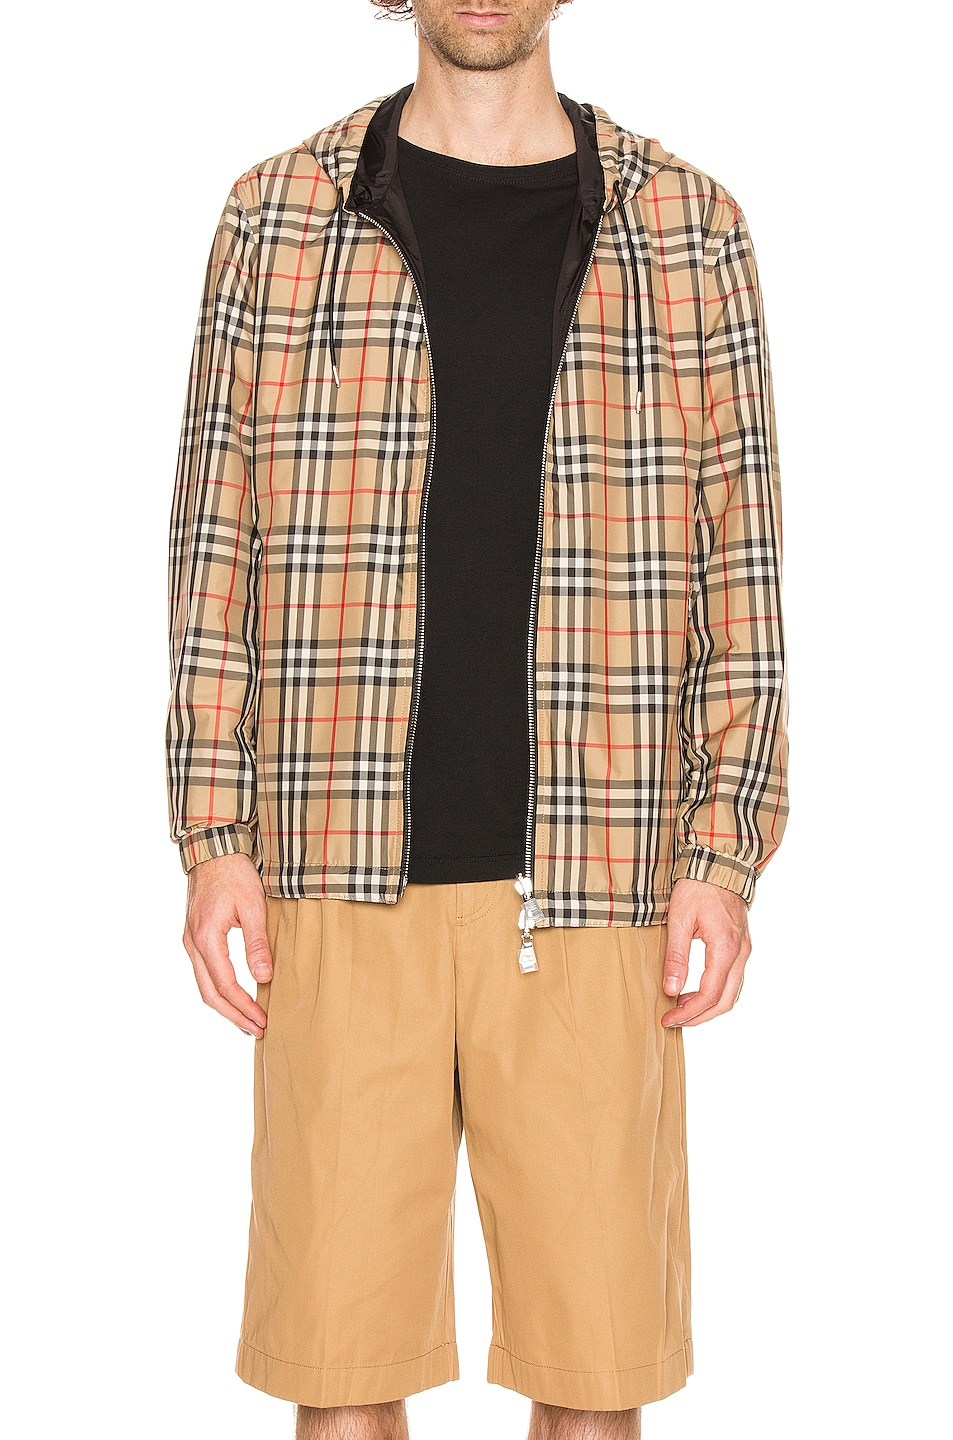 Image 1 of Burberry Stretton Reversible Jacket in Archive Beige IP Check